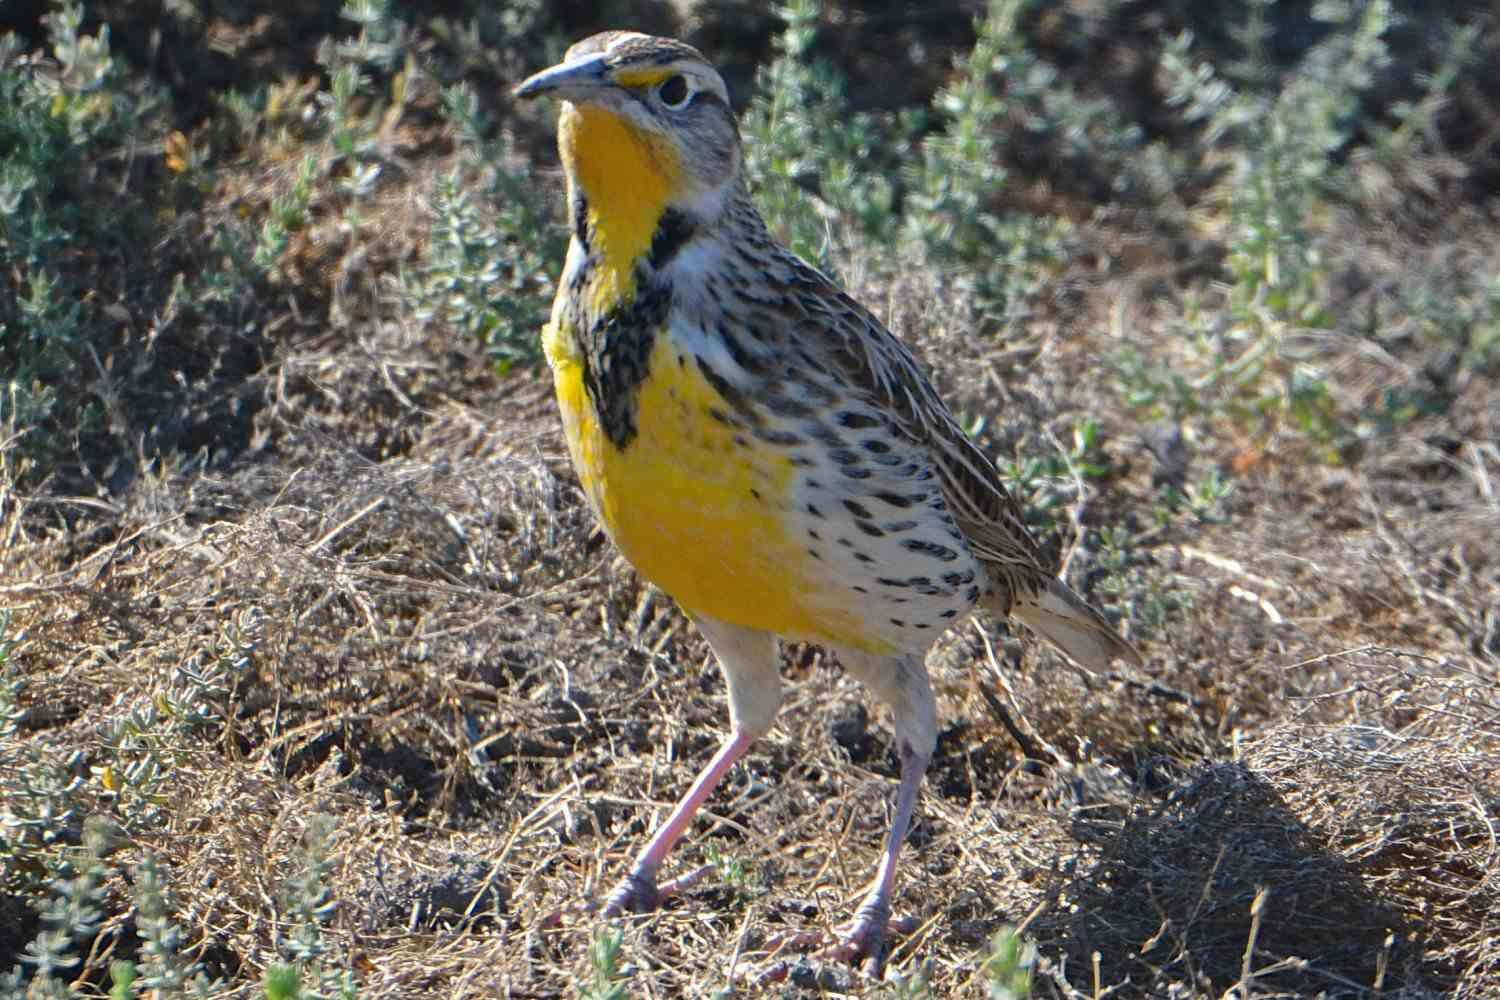 Western Meadowlark, the state bird of Wyoming, on the ground.